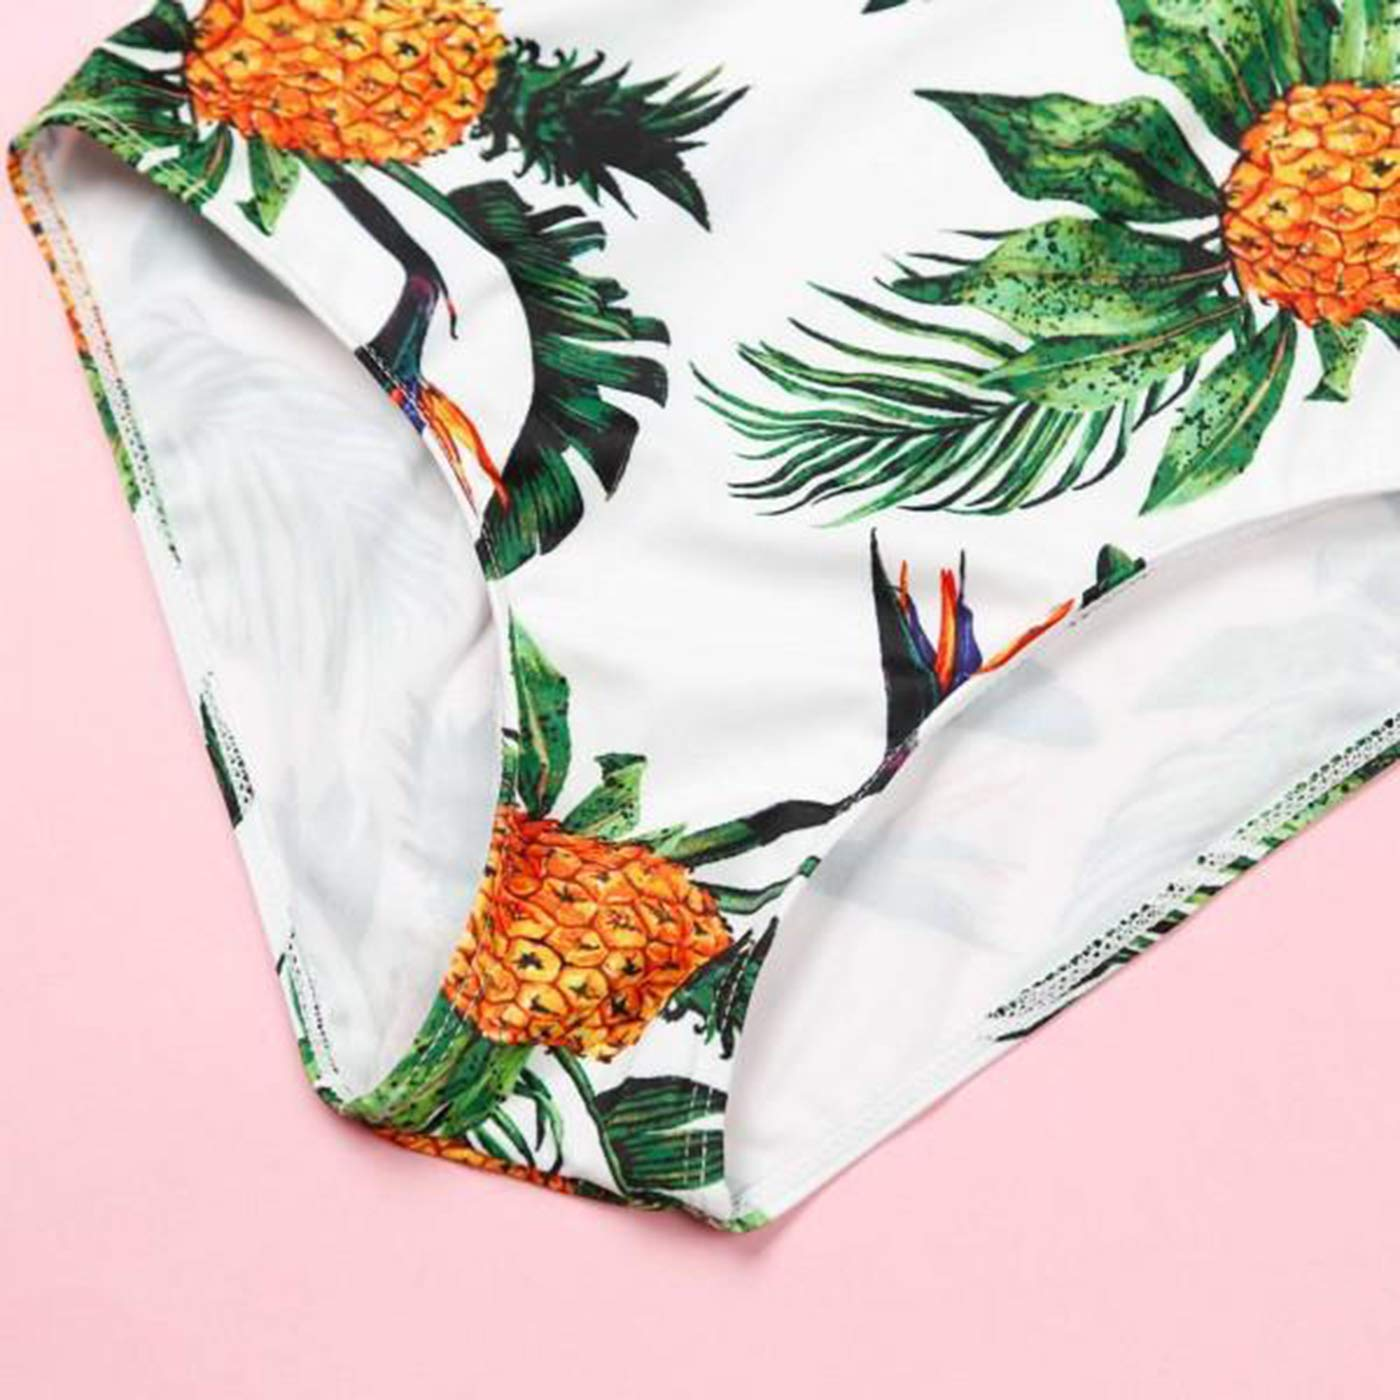 Family Matching Swimsuit Monokini for Women Men Boy and Girl Mommy and Me Swimsuit One Piece Pineapple Printed Swimsuit